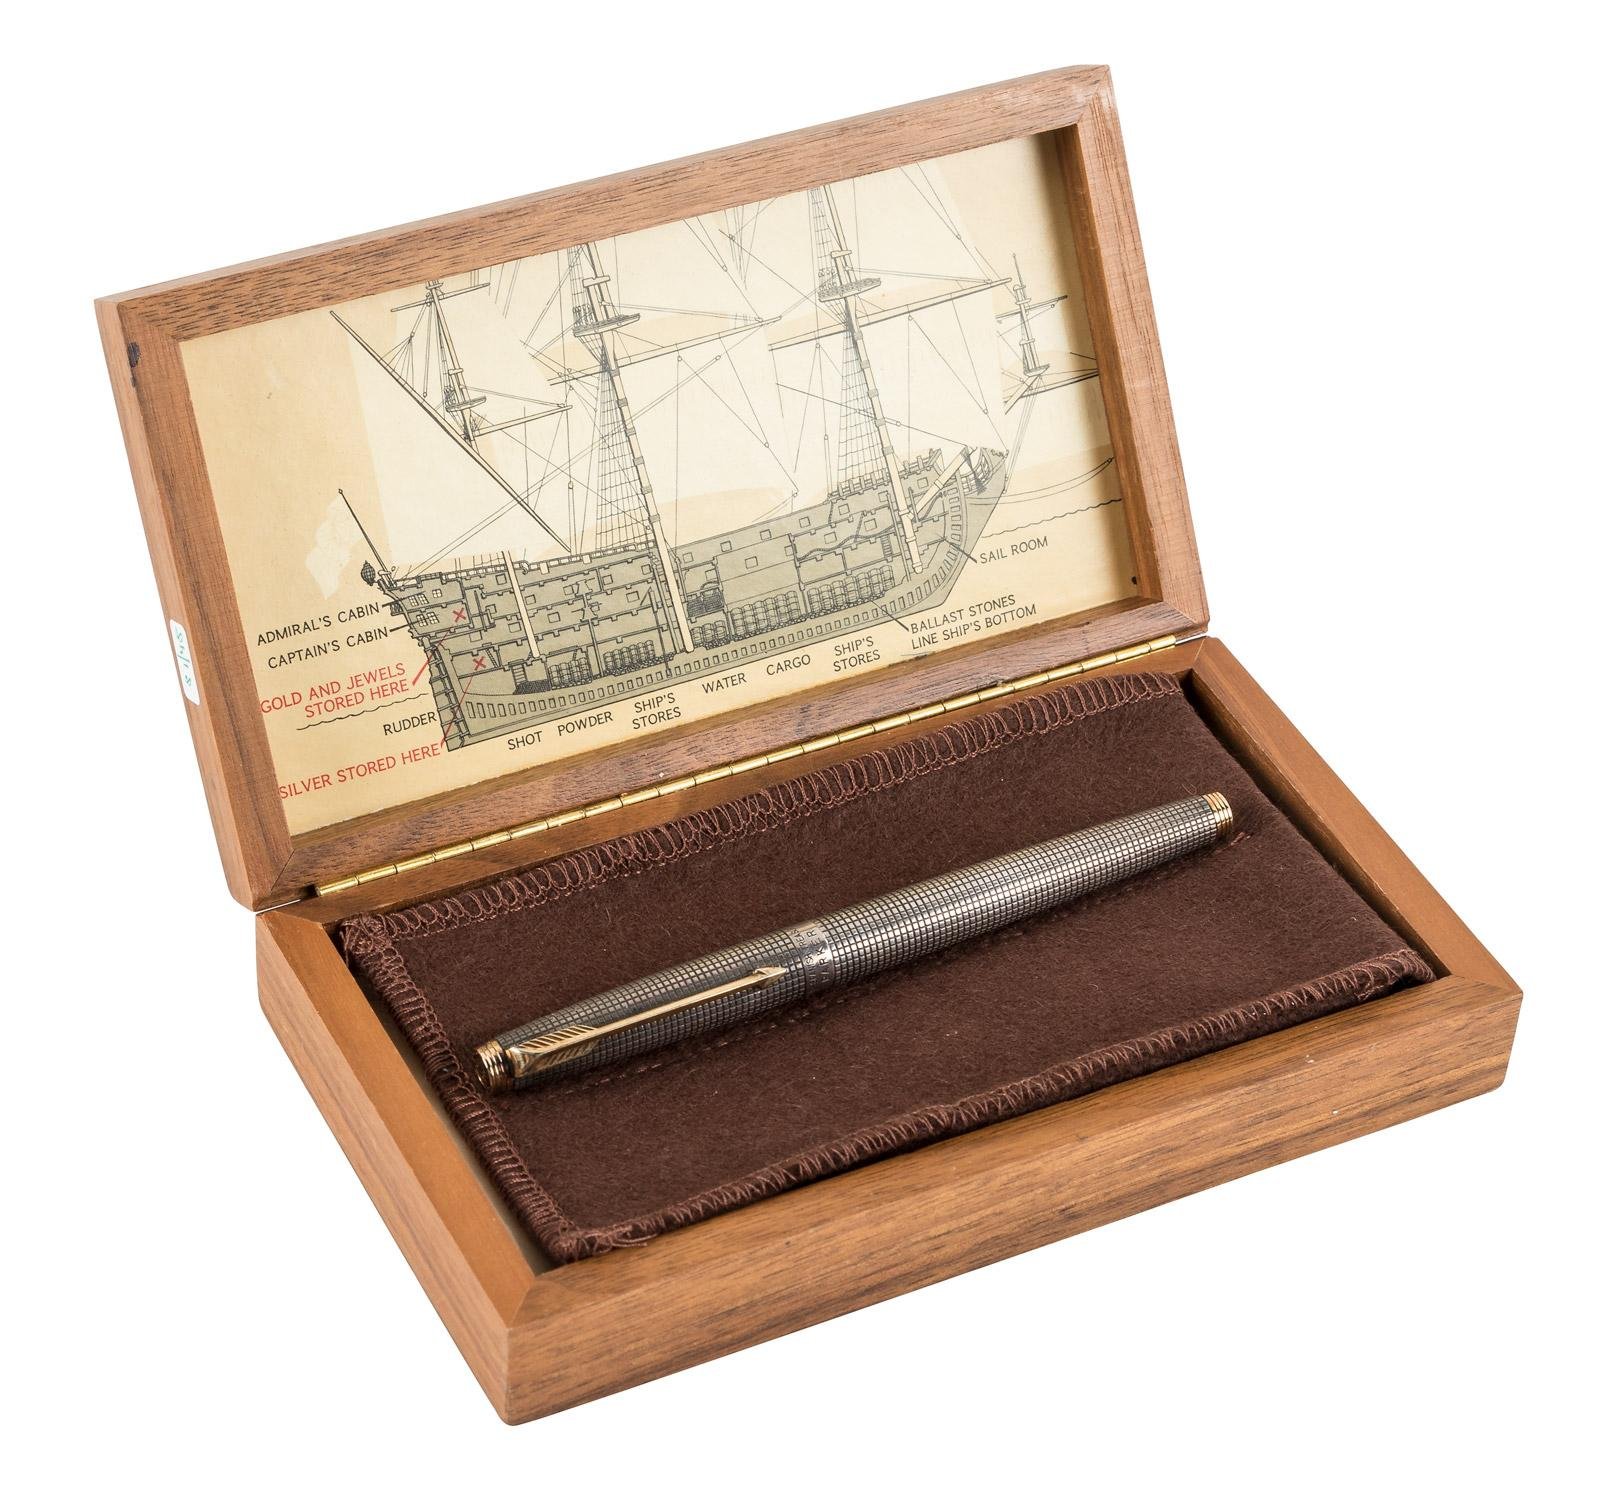 Parker 75 Spanish Treasure Fleet Limited Edition Fountain Pen [with